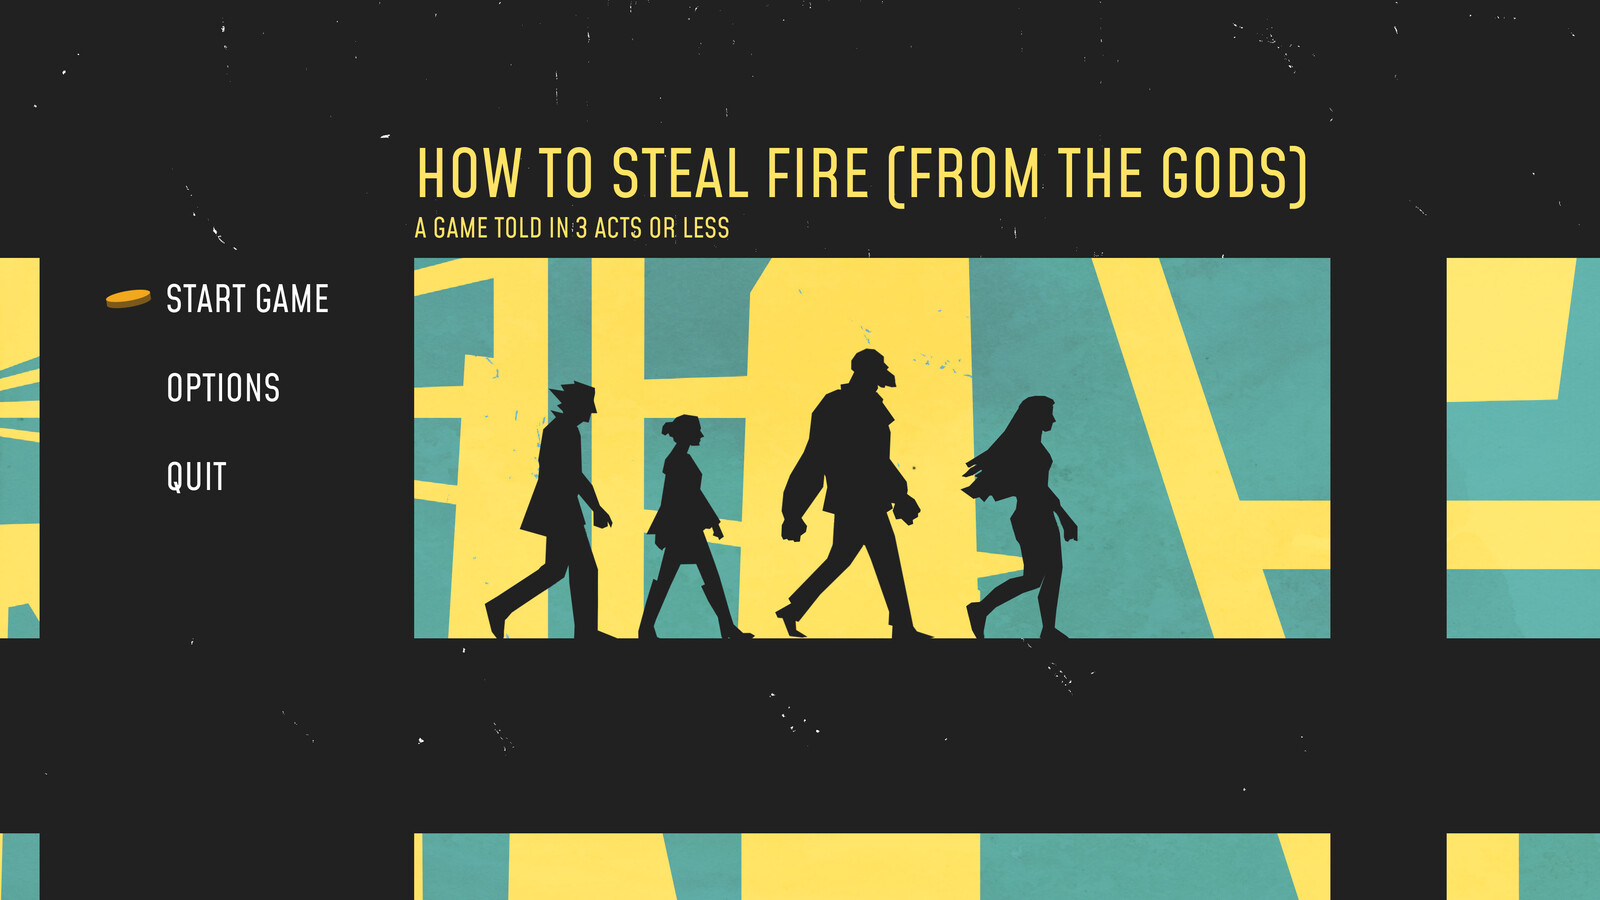 How to steal fire